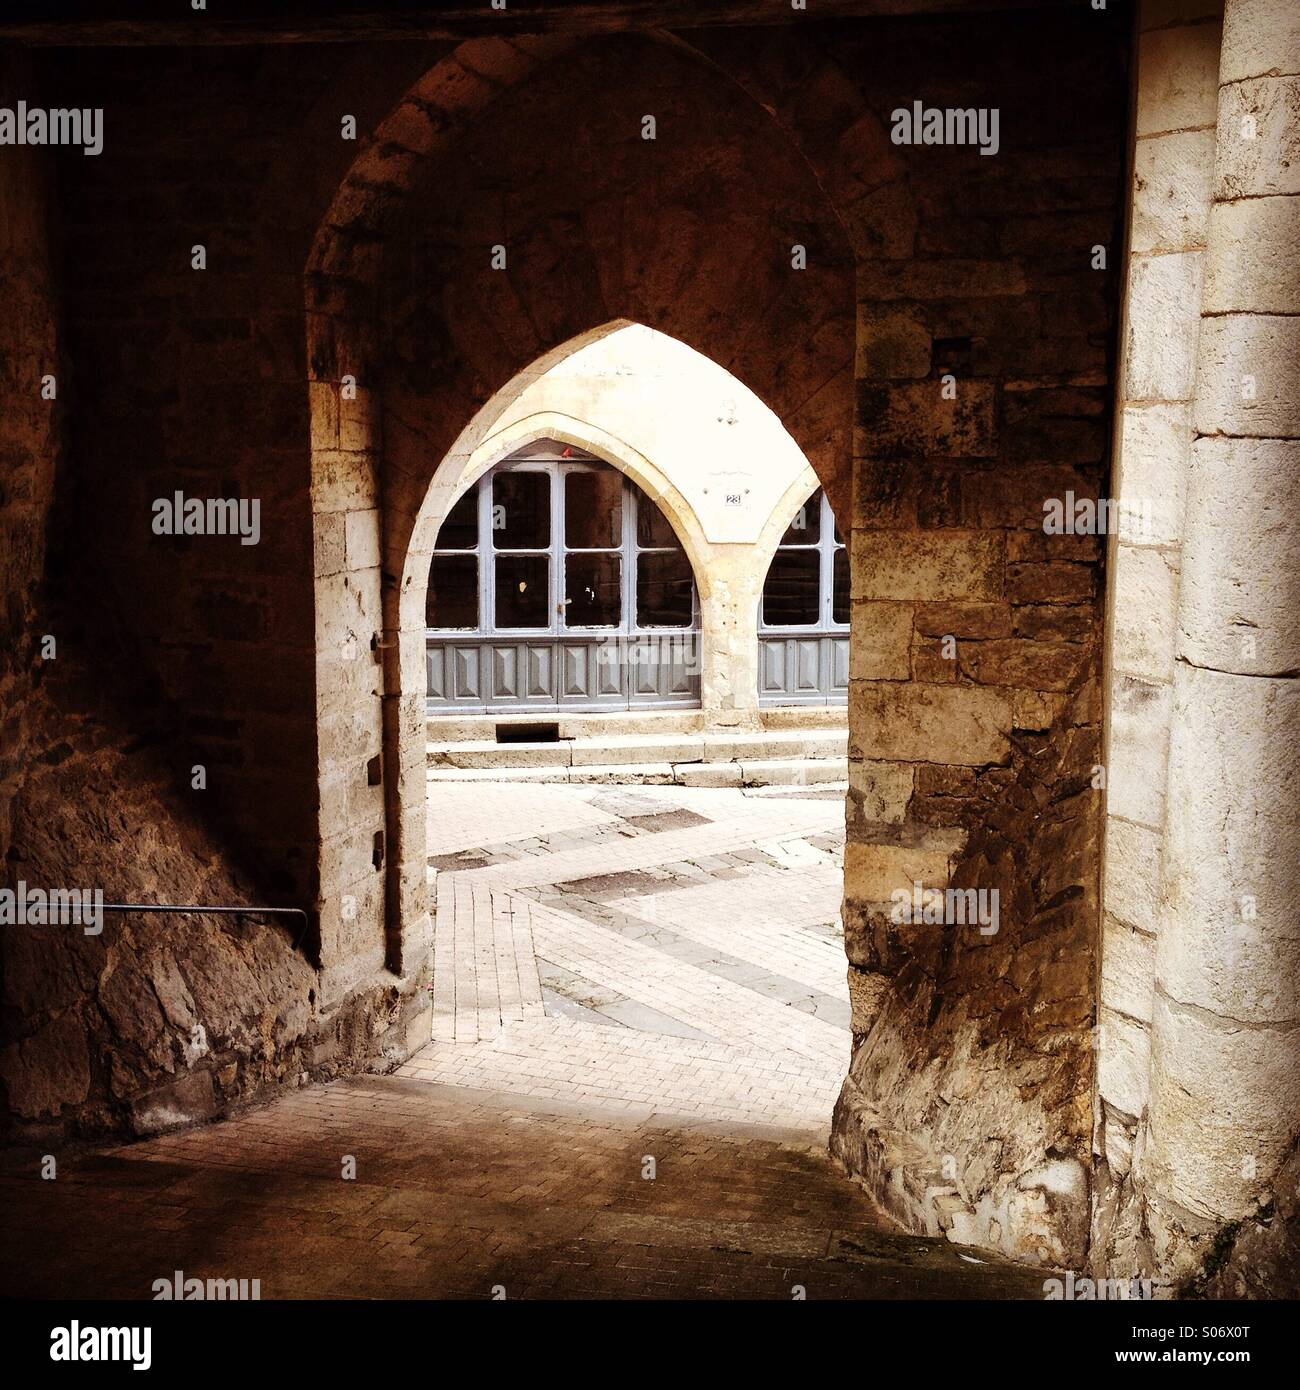 Arched doors in Caylus, France - Stock Image